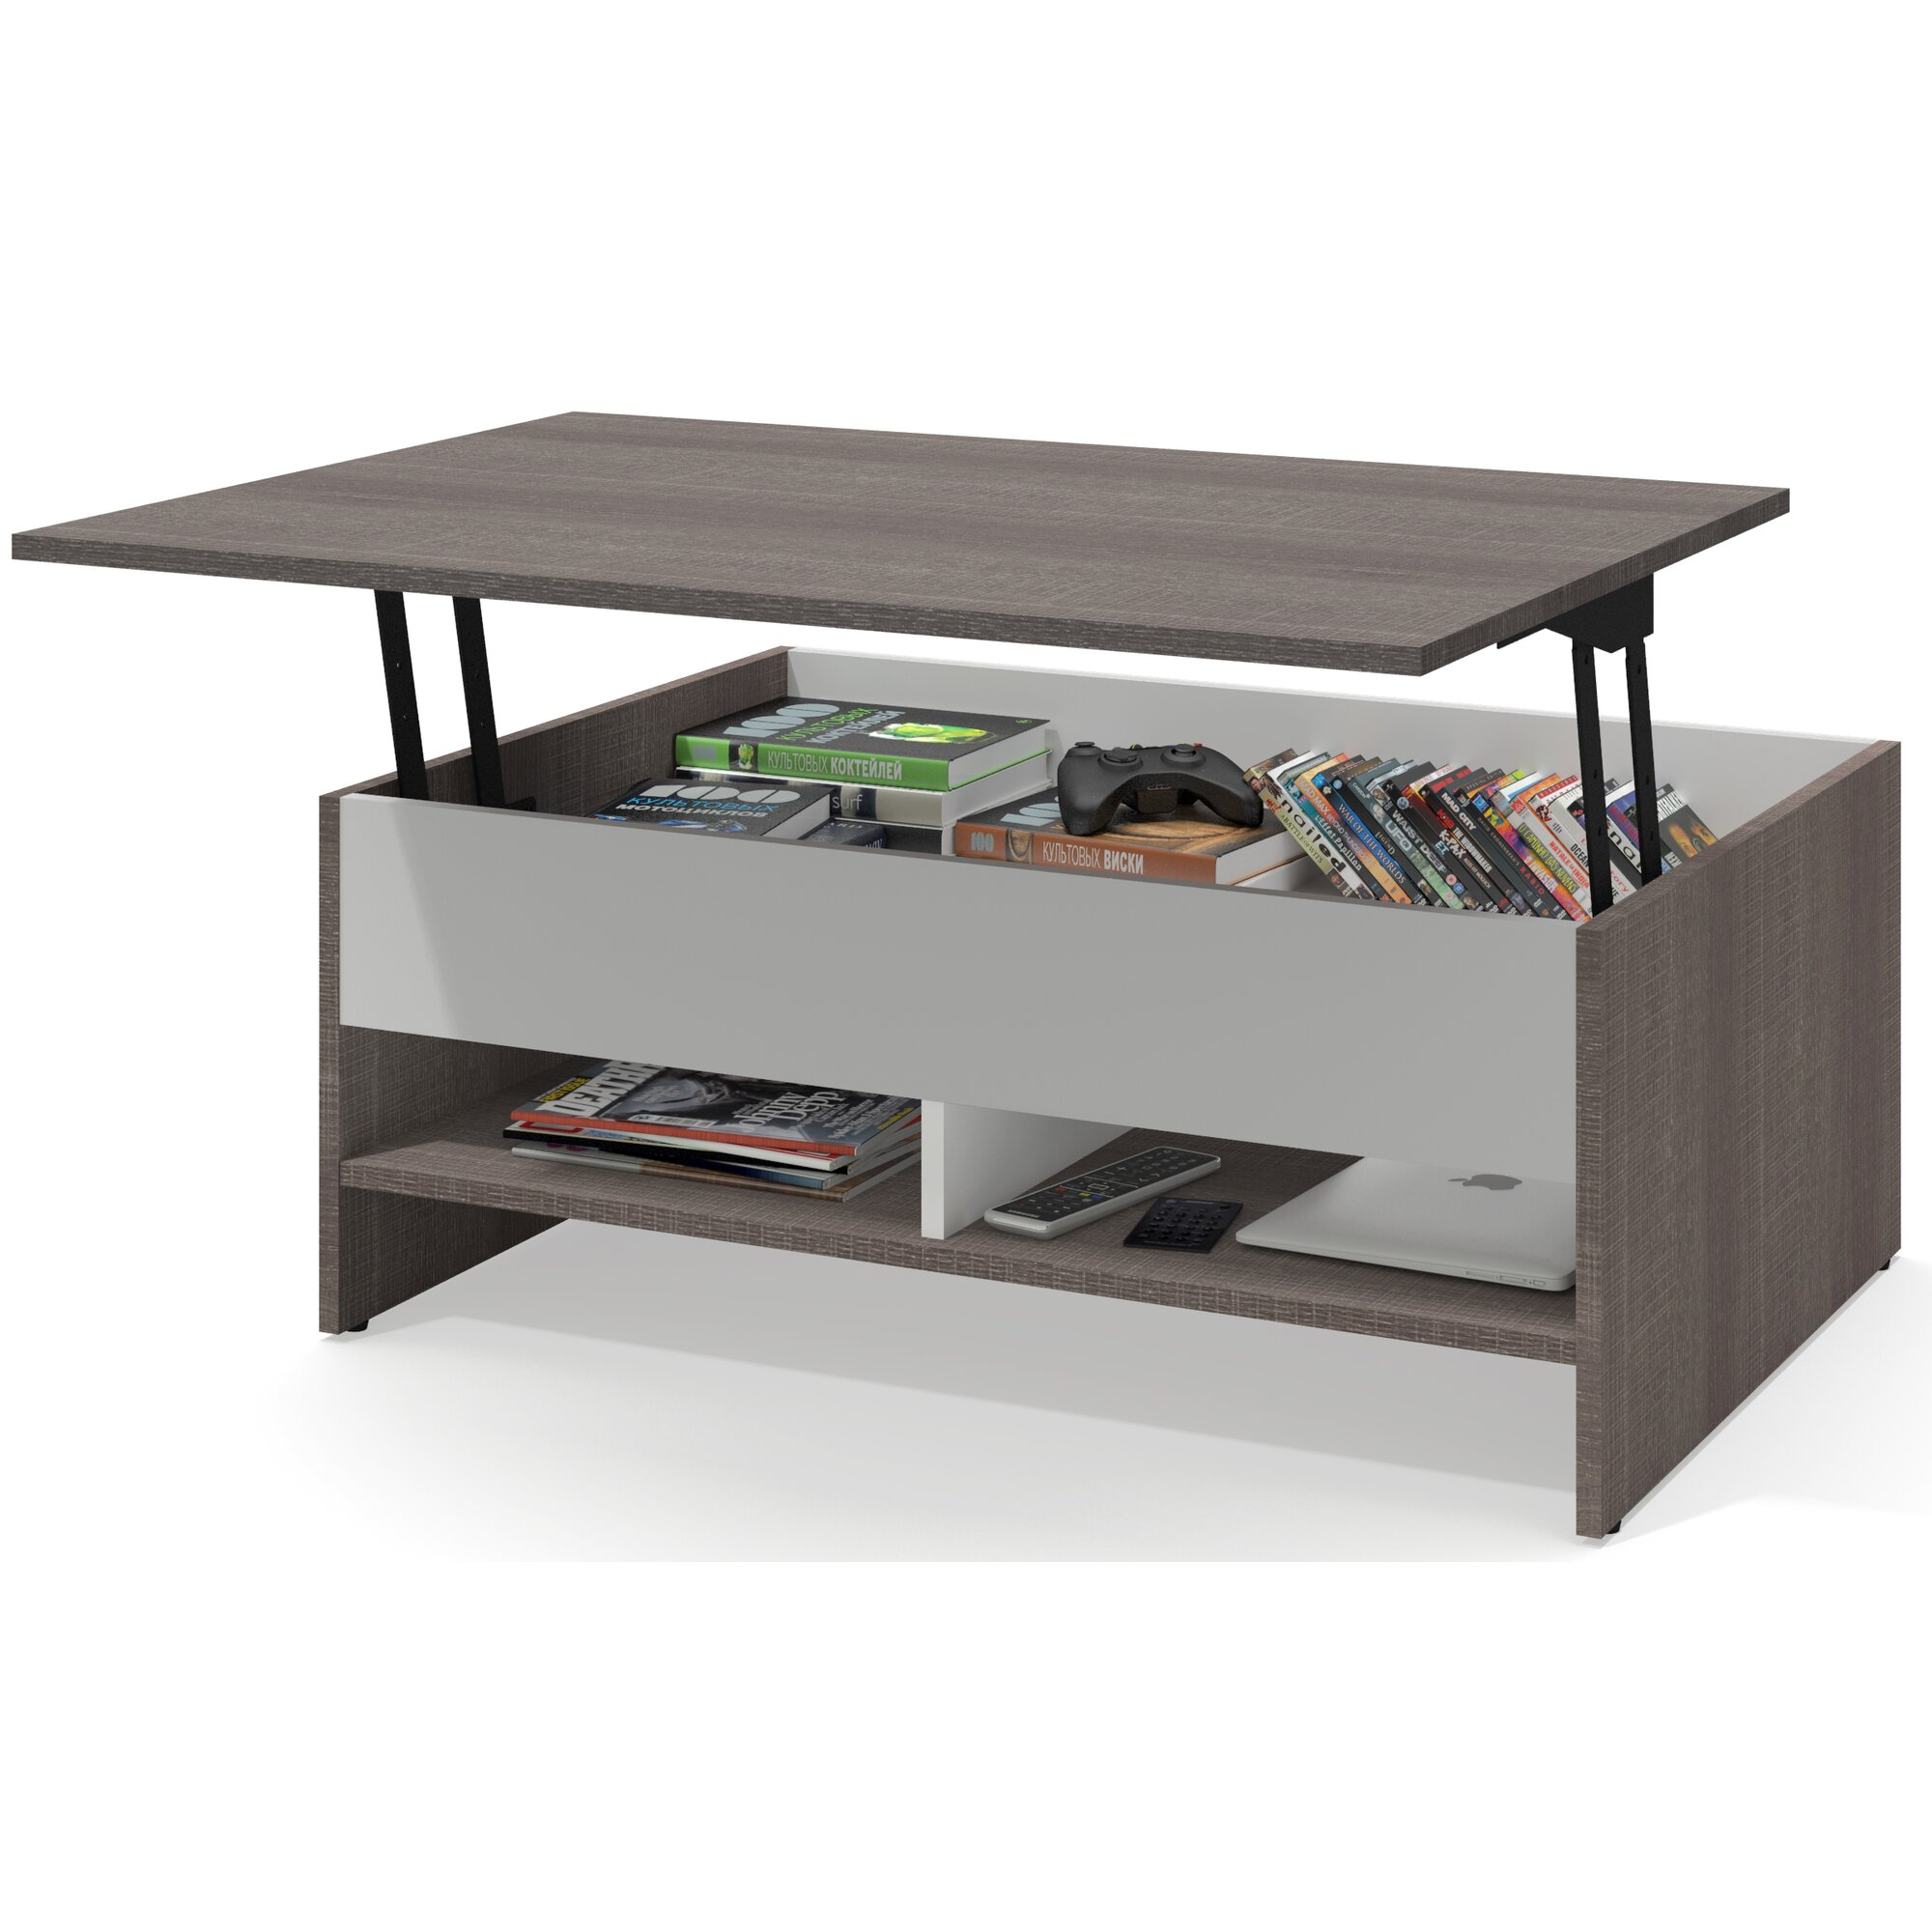 Latitude Run Frederick Storage Coffee Table with Lift Top  : FrederickStorageCoffeeTablewithLiftTop from www.wayfair.ca size 2000 x 2000 jpeg 244kB